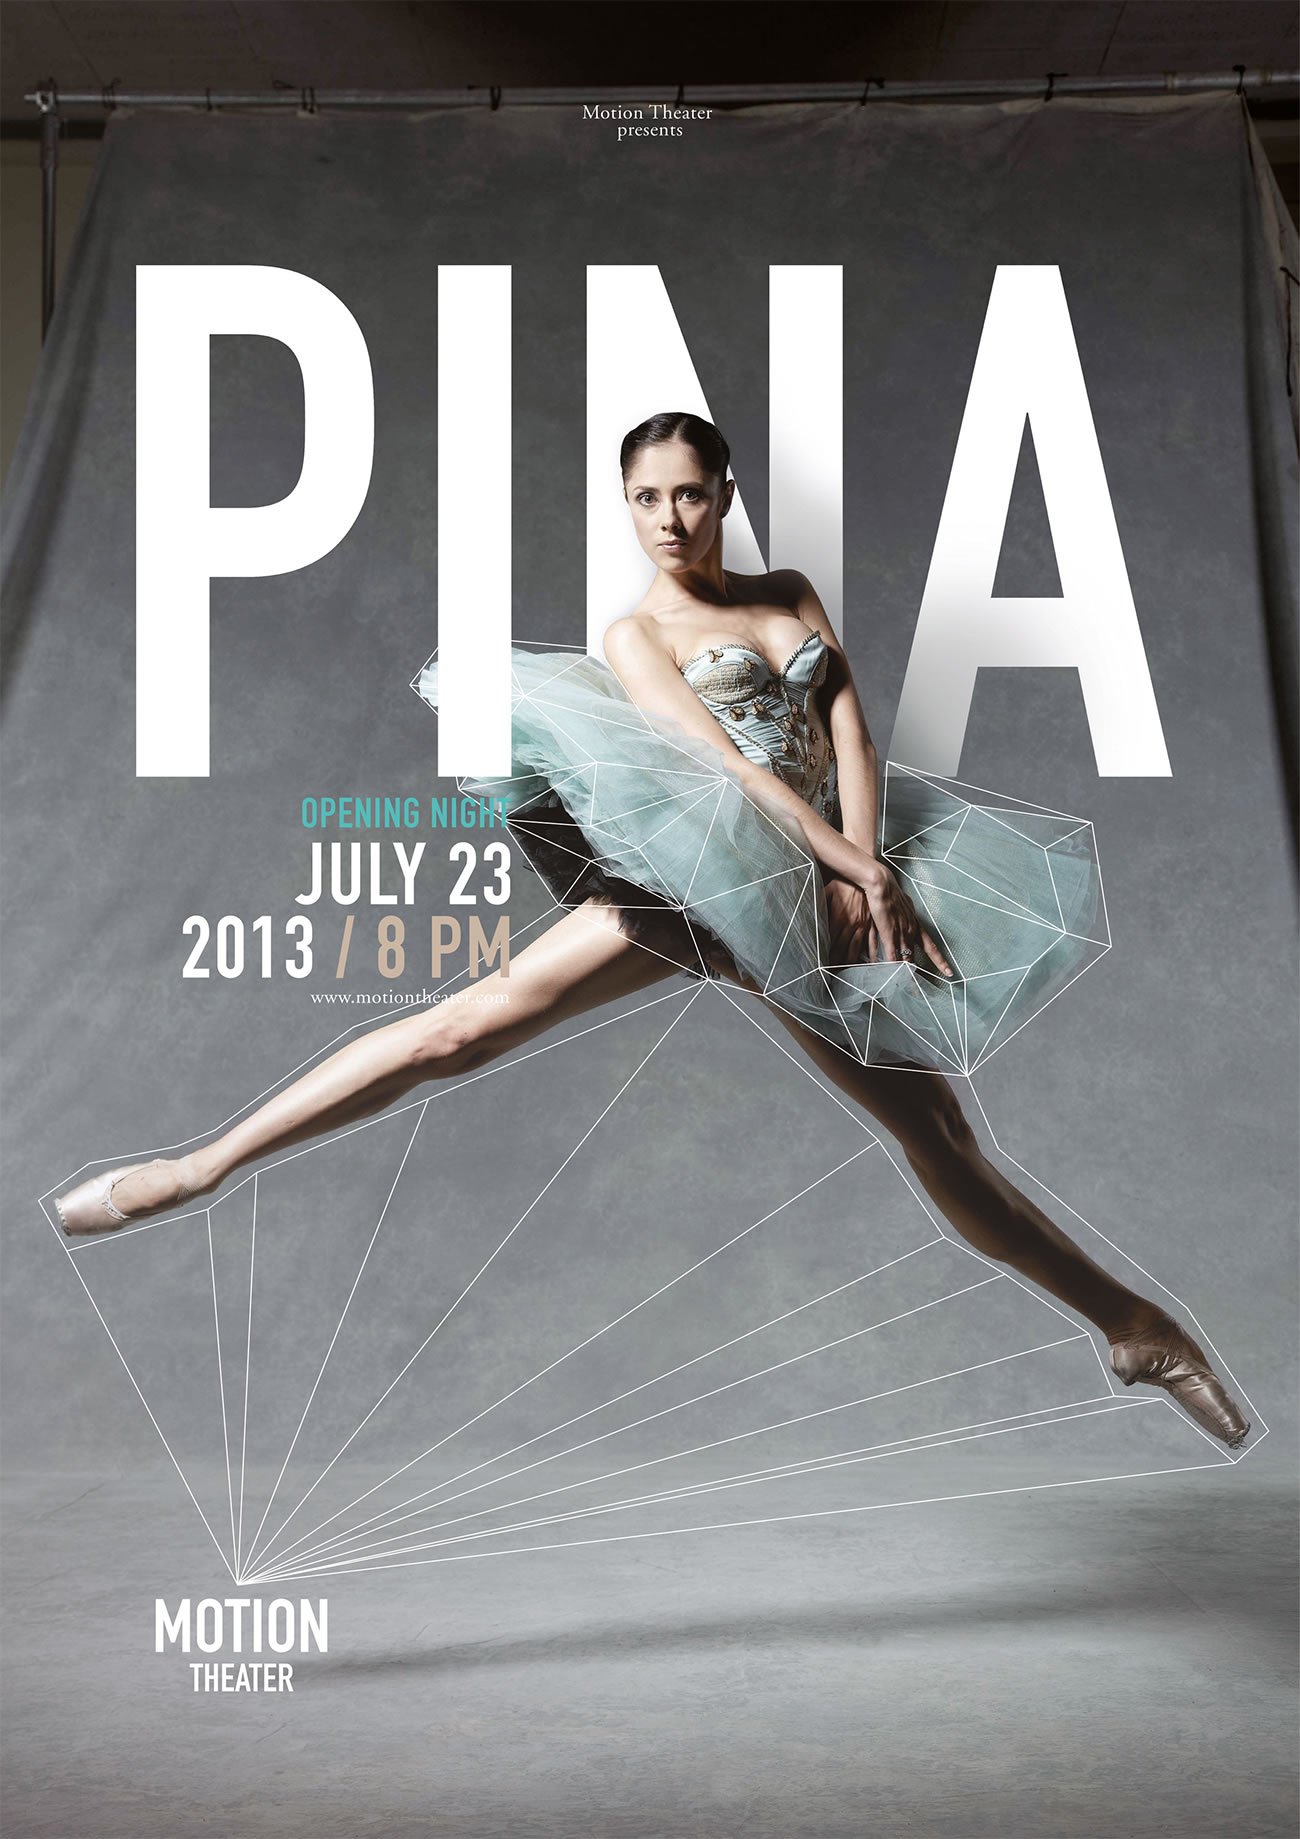 Pina, Motion Theater by Caroline Grohs